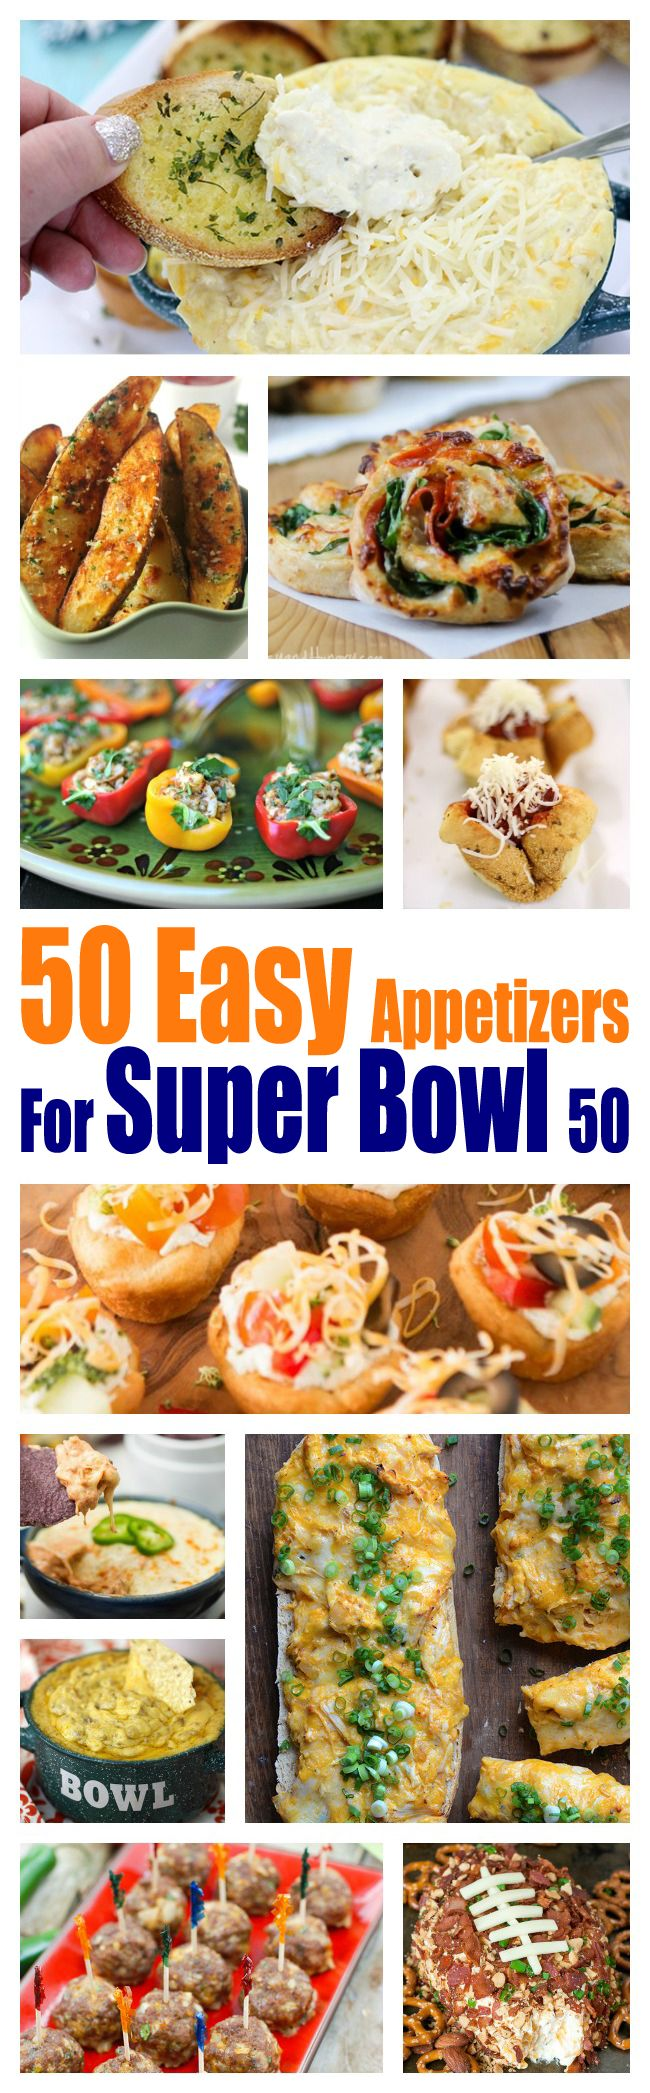 Win at Super Bowl Party Planning with these crazy easy appetizers. Yay for Football!